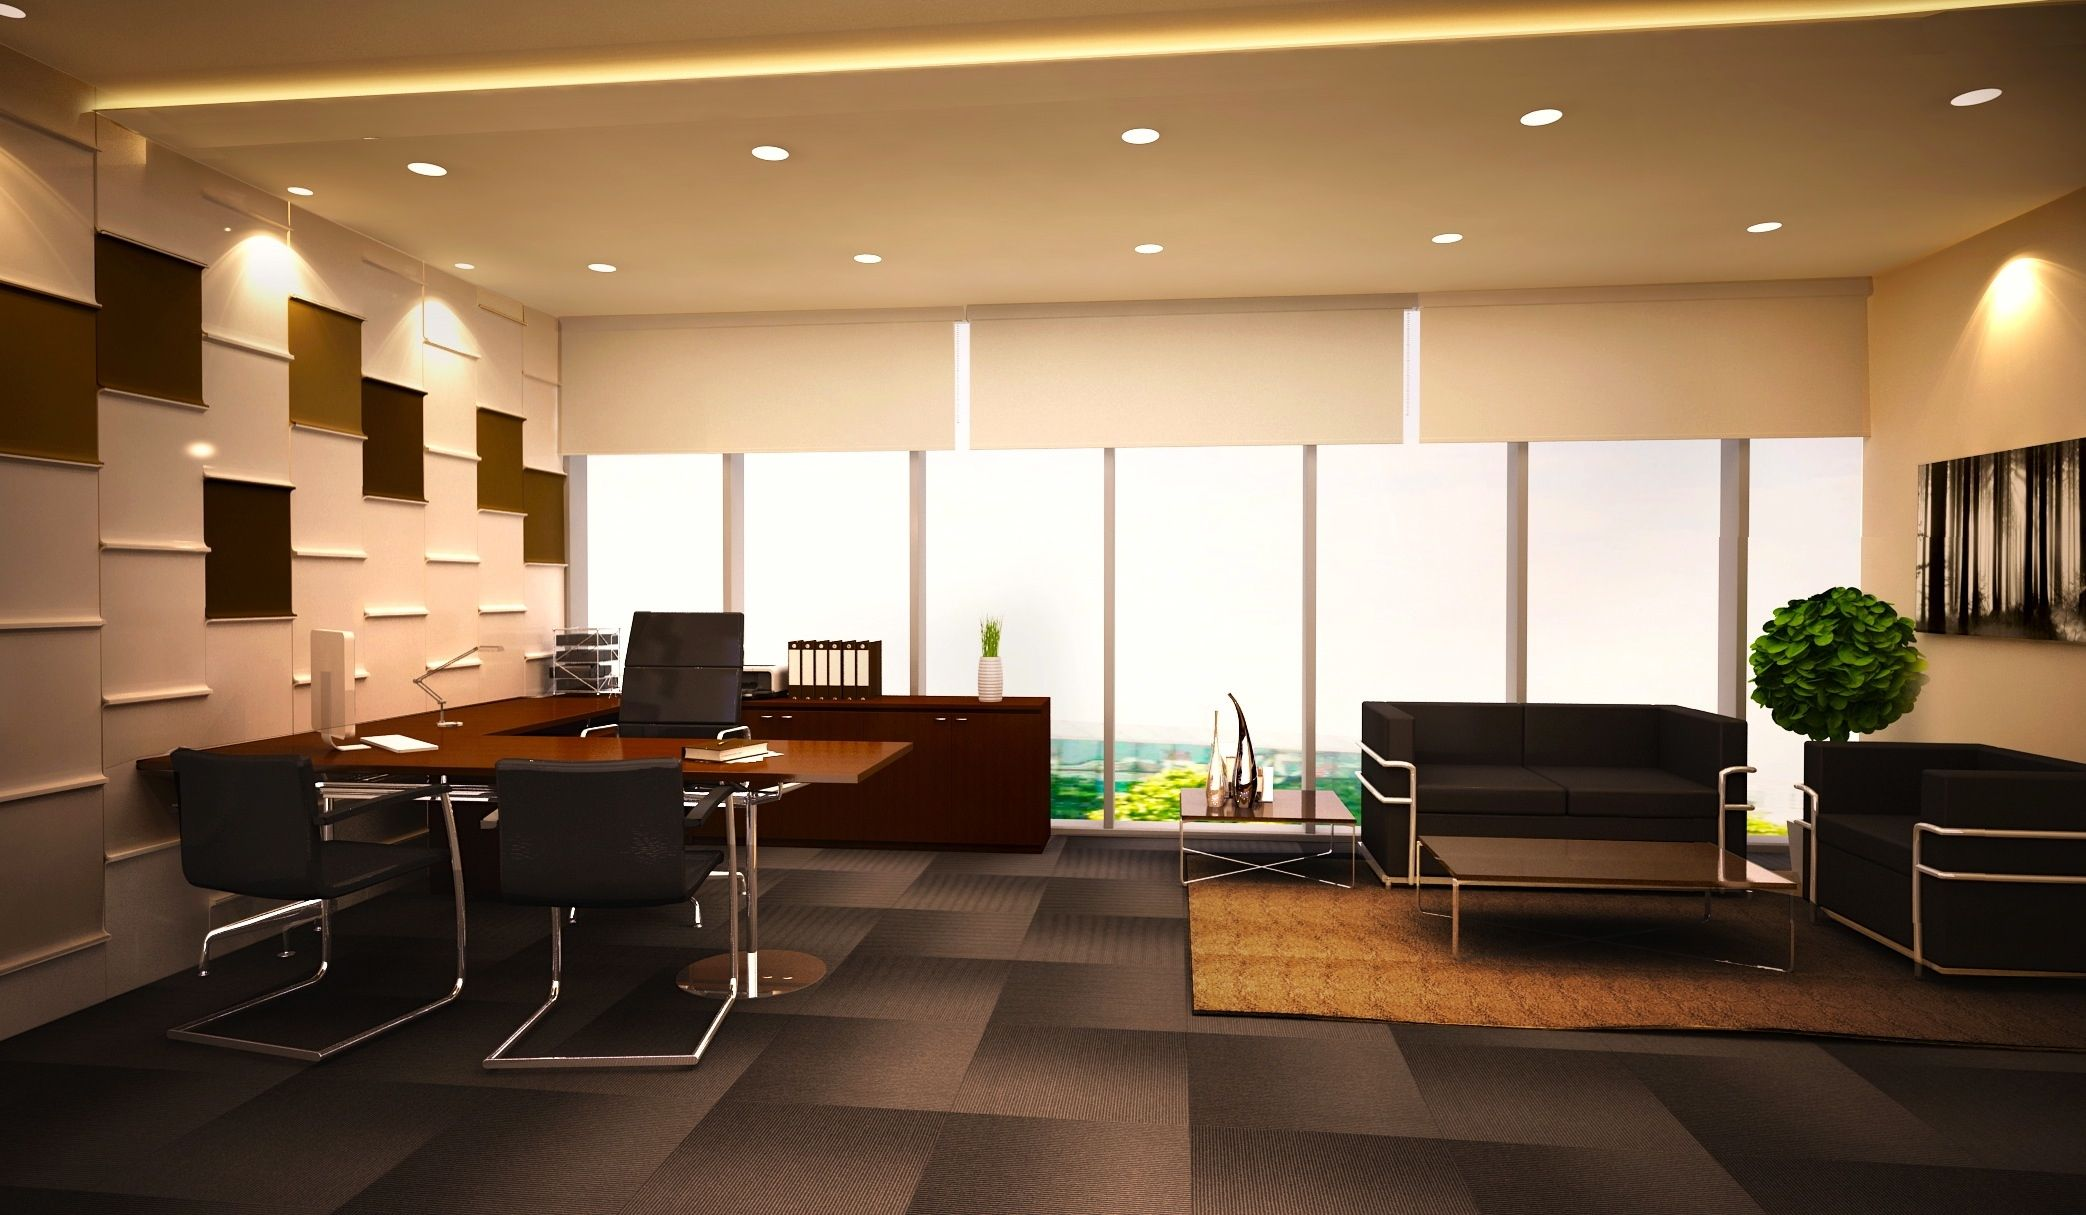 exciting light home for ideas lights white sofa lighting modern and also interesting with design cool ceiling interior surprising blind window office